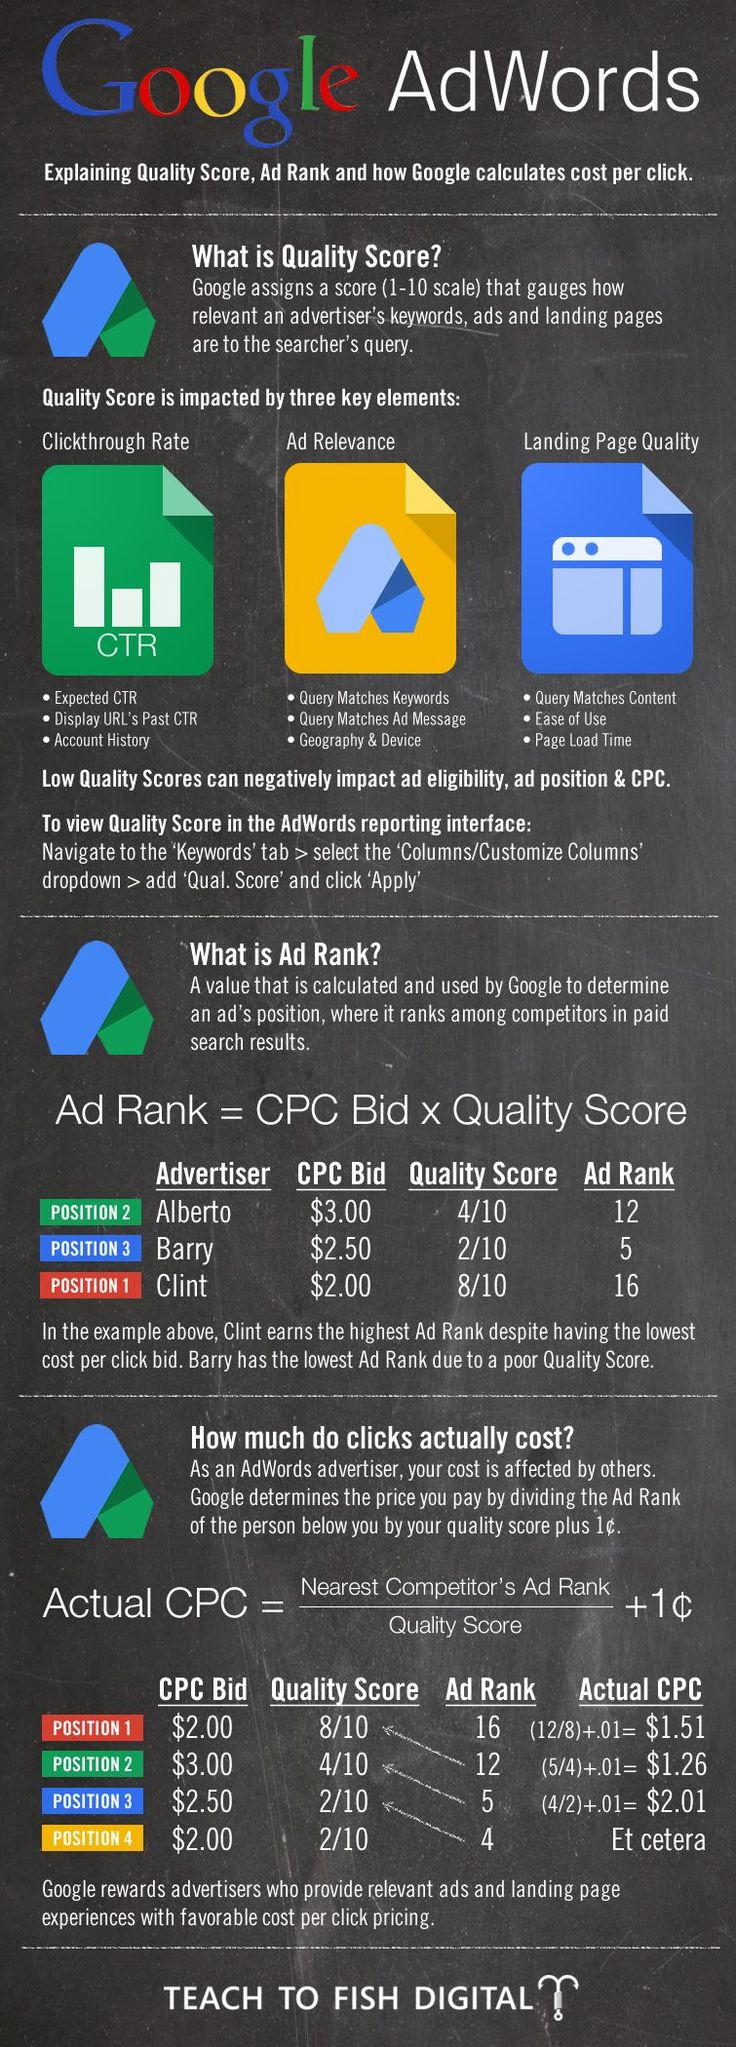 Google Adwords Quality Score Infographic via Chris Sietsema.